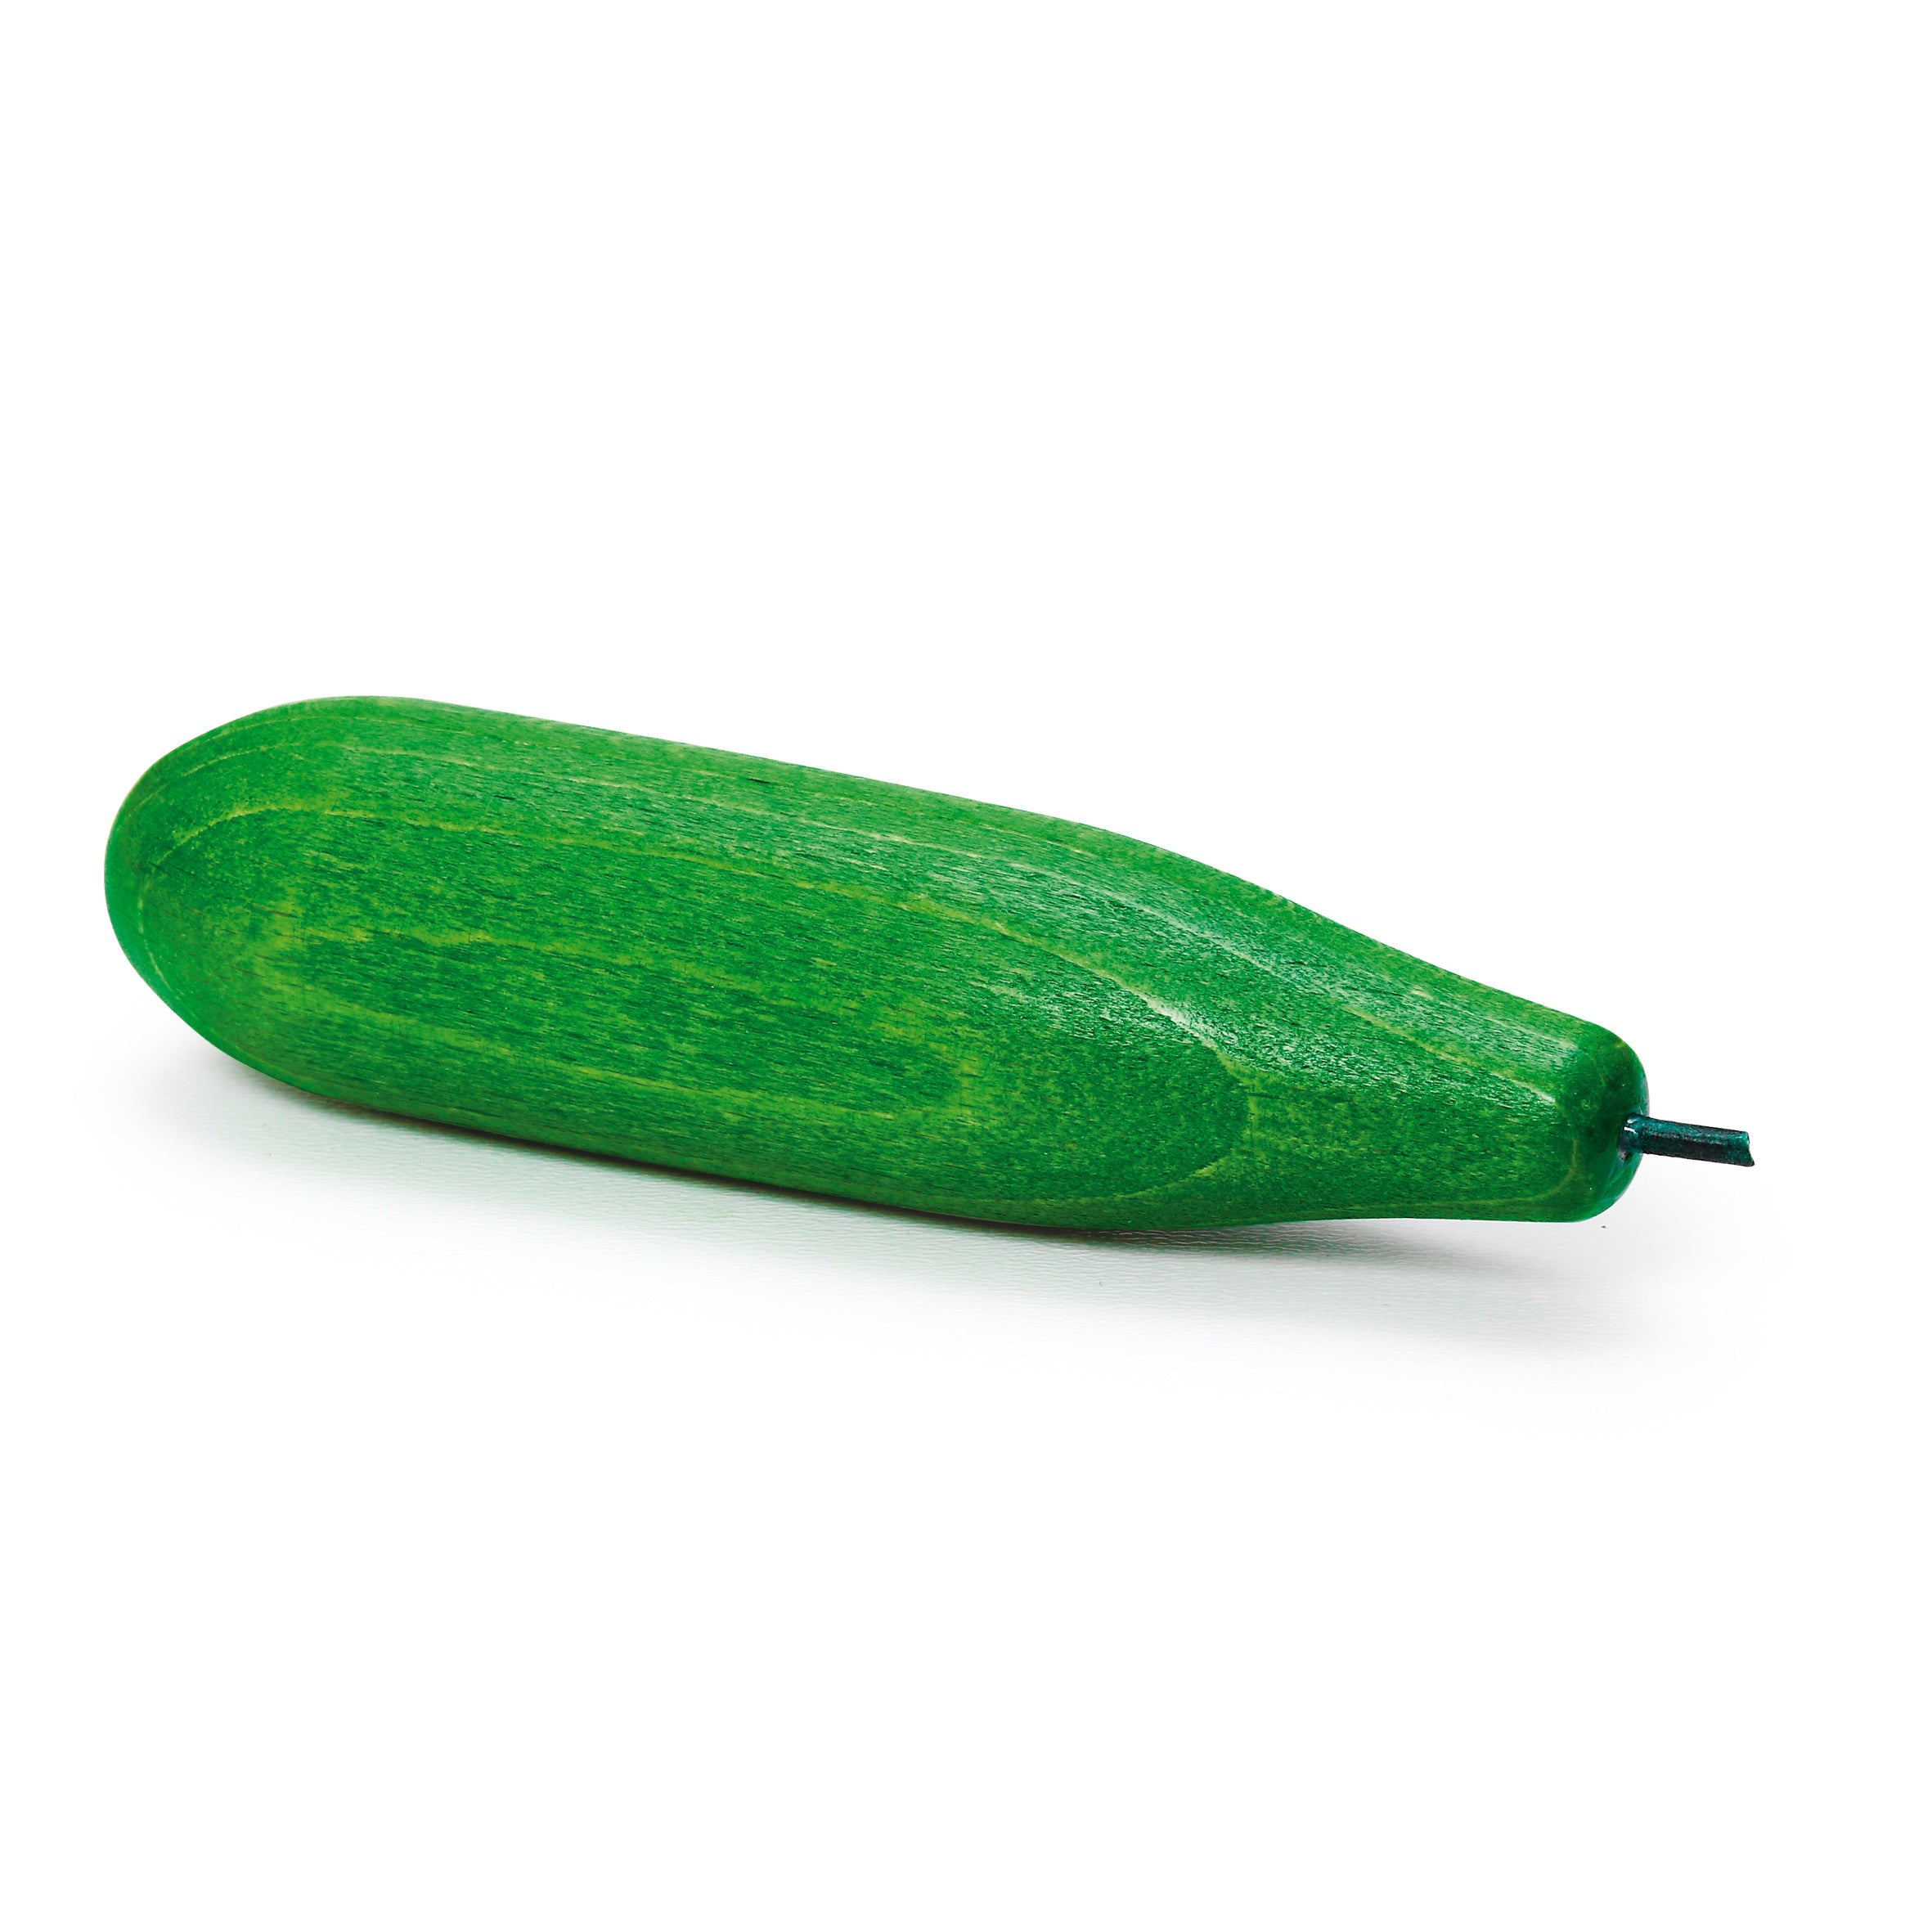 Erzi Cucumber Wooden Food